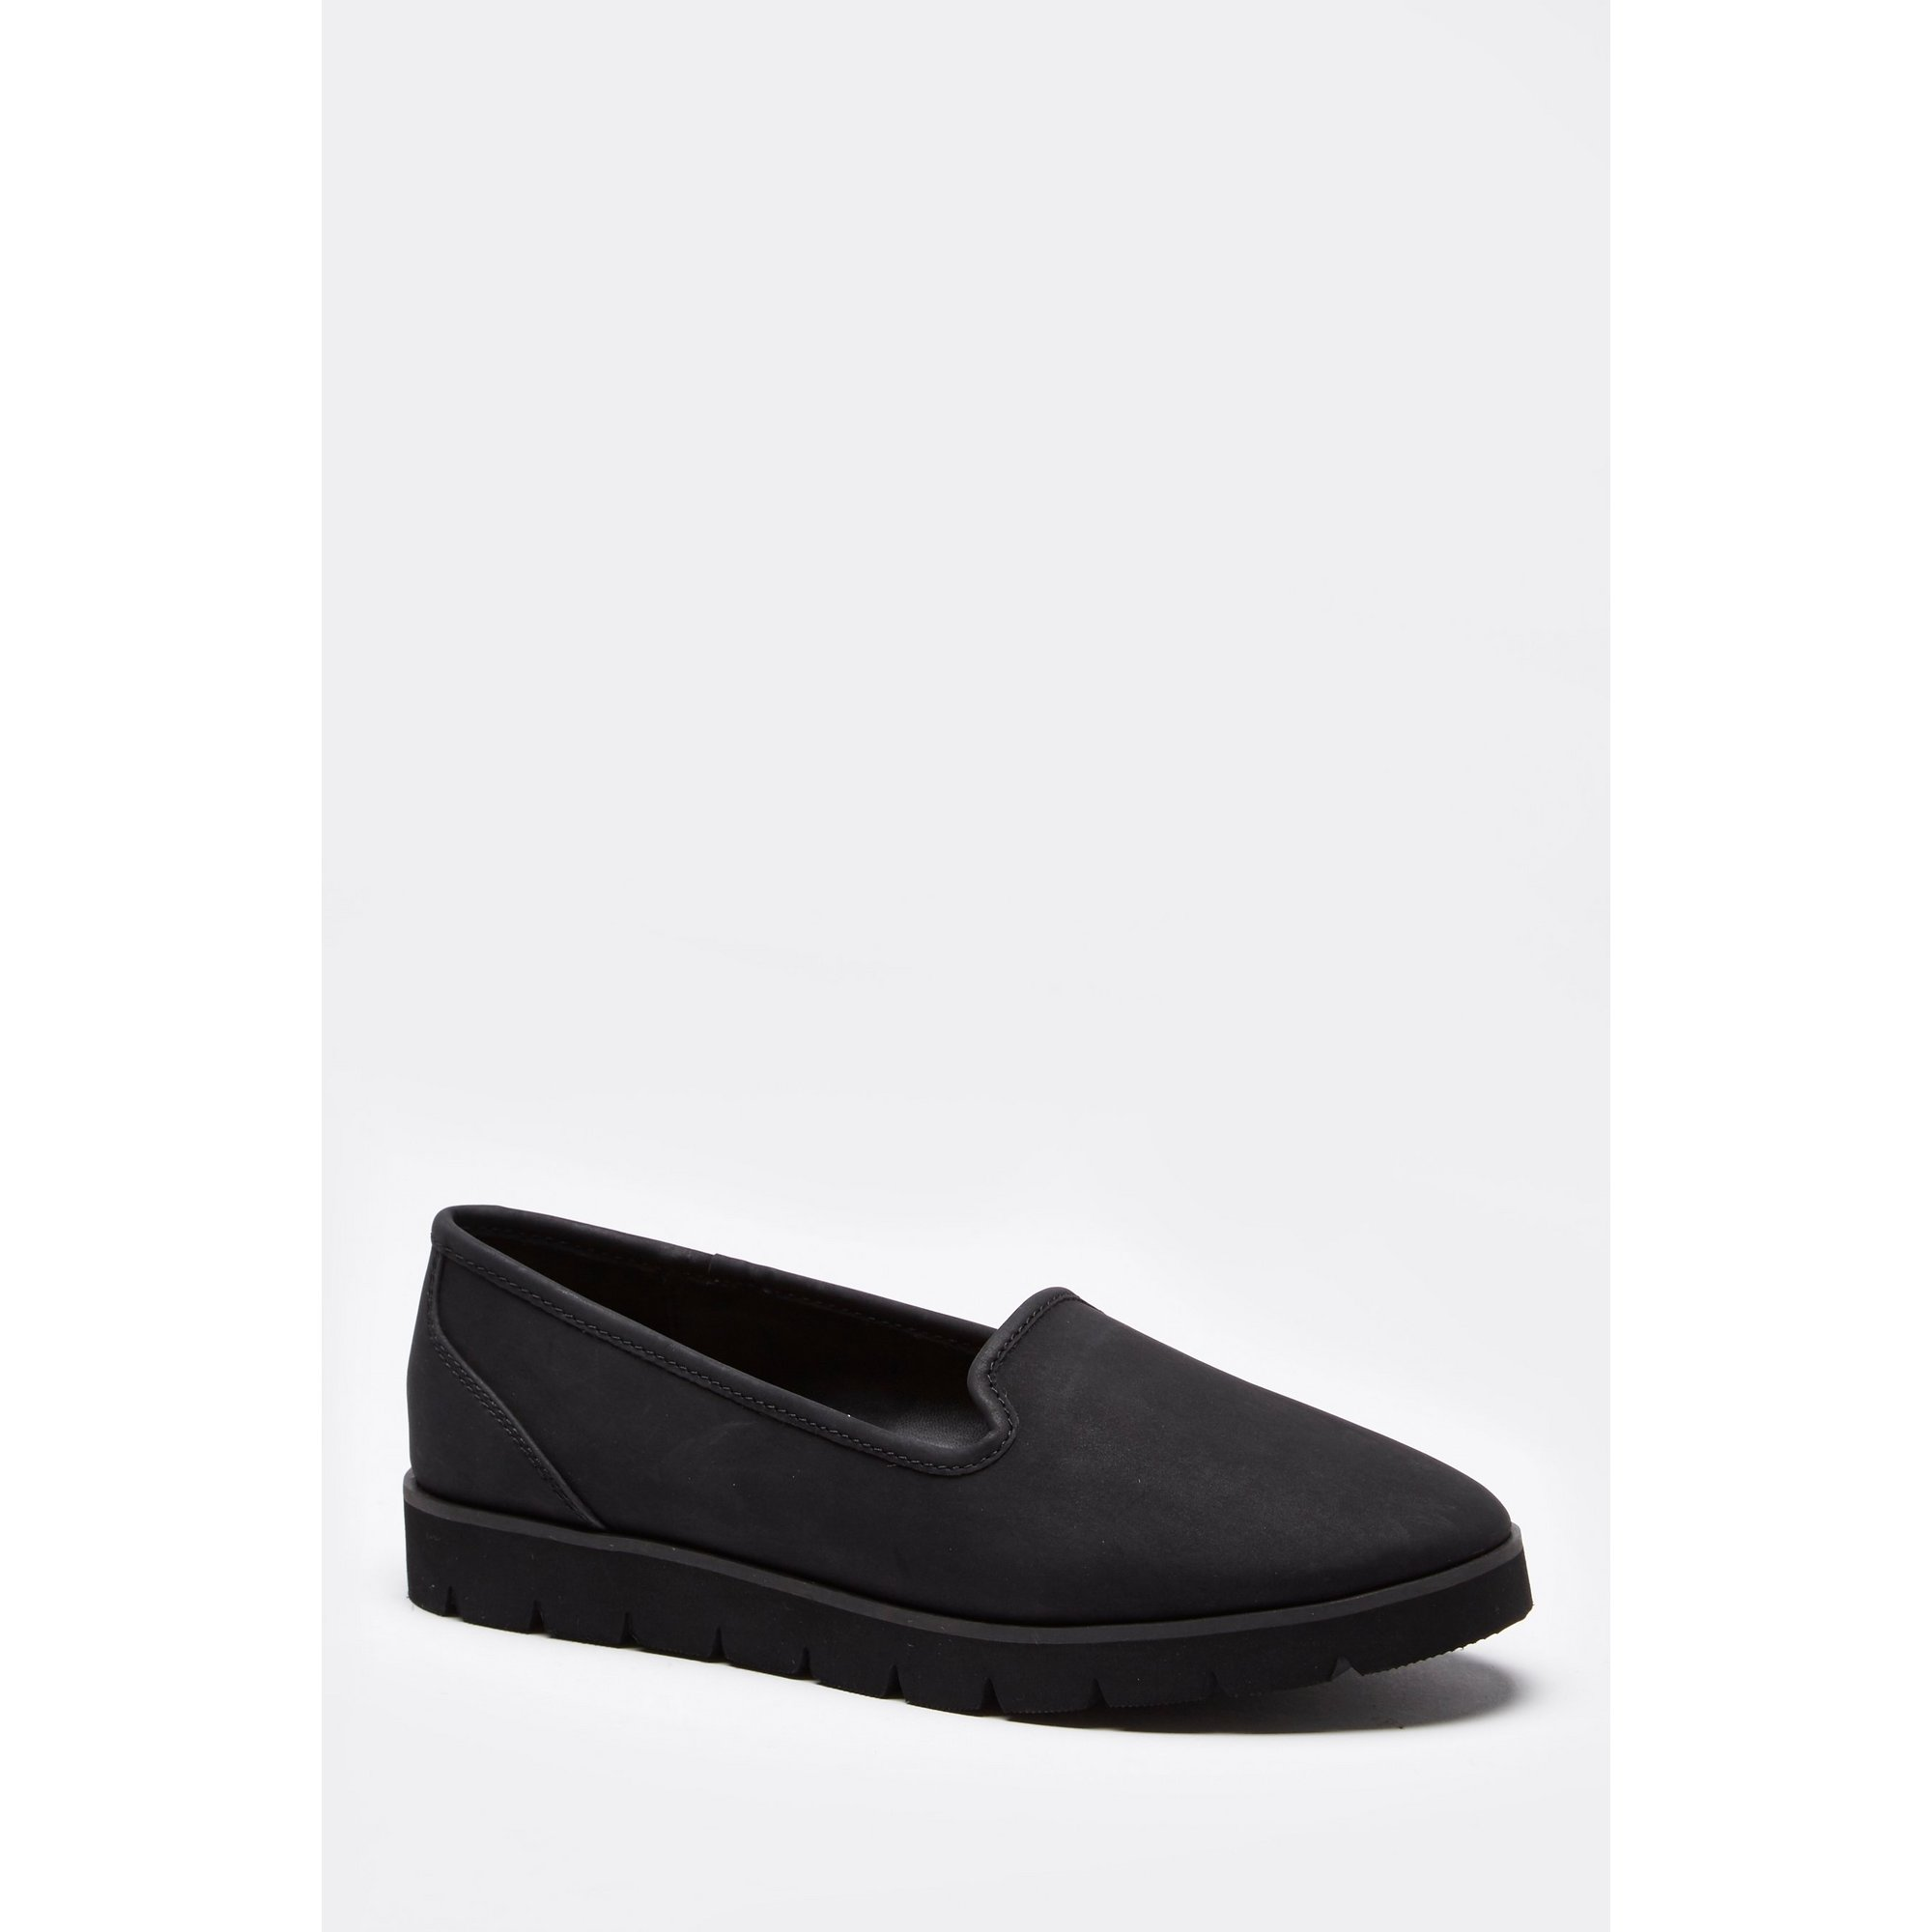 Image of Casual Loafer Cut Black Shoes